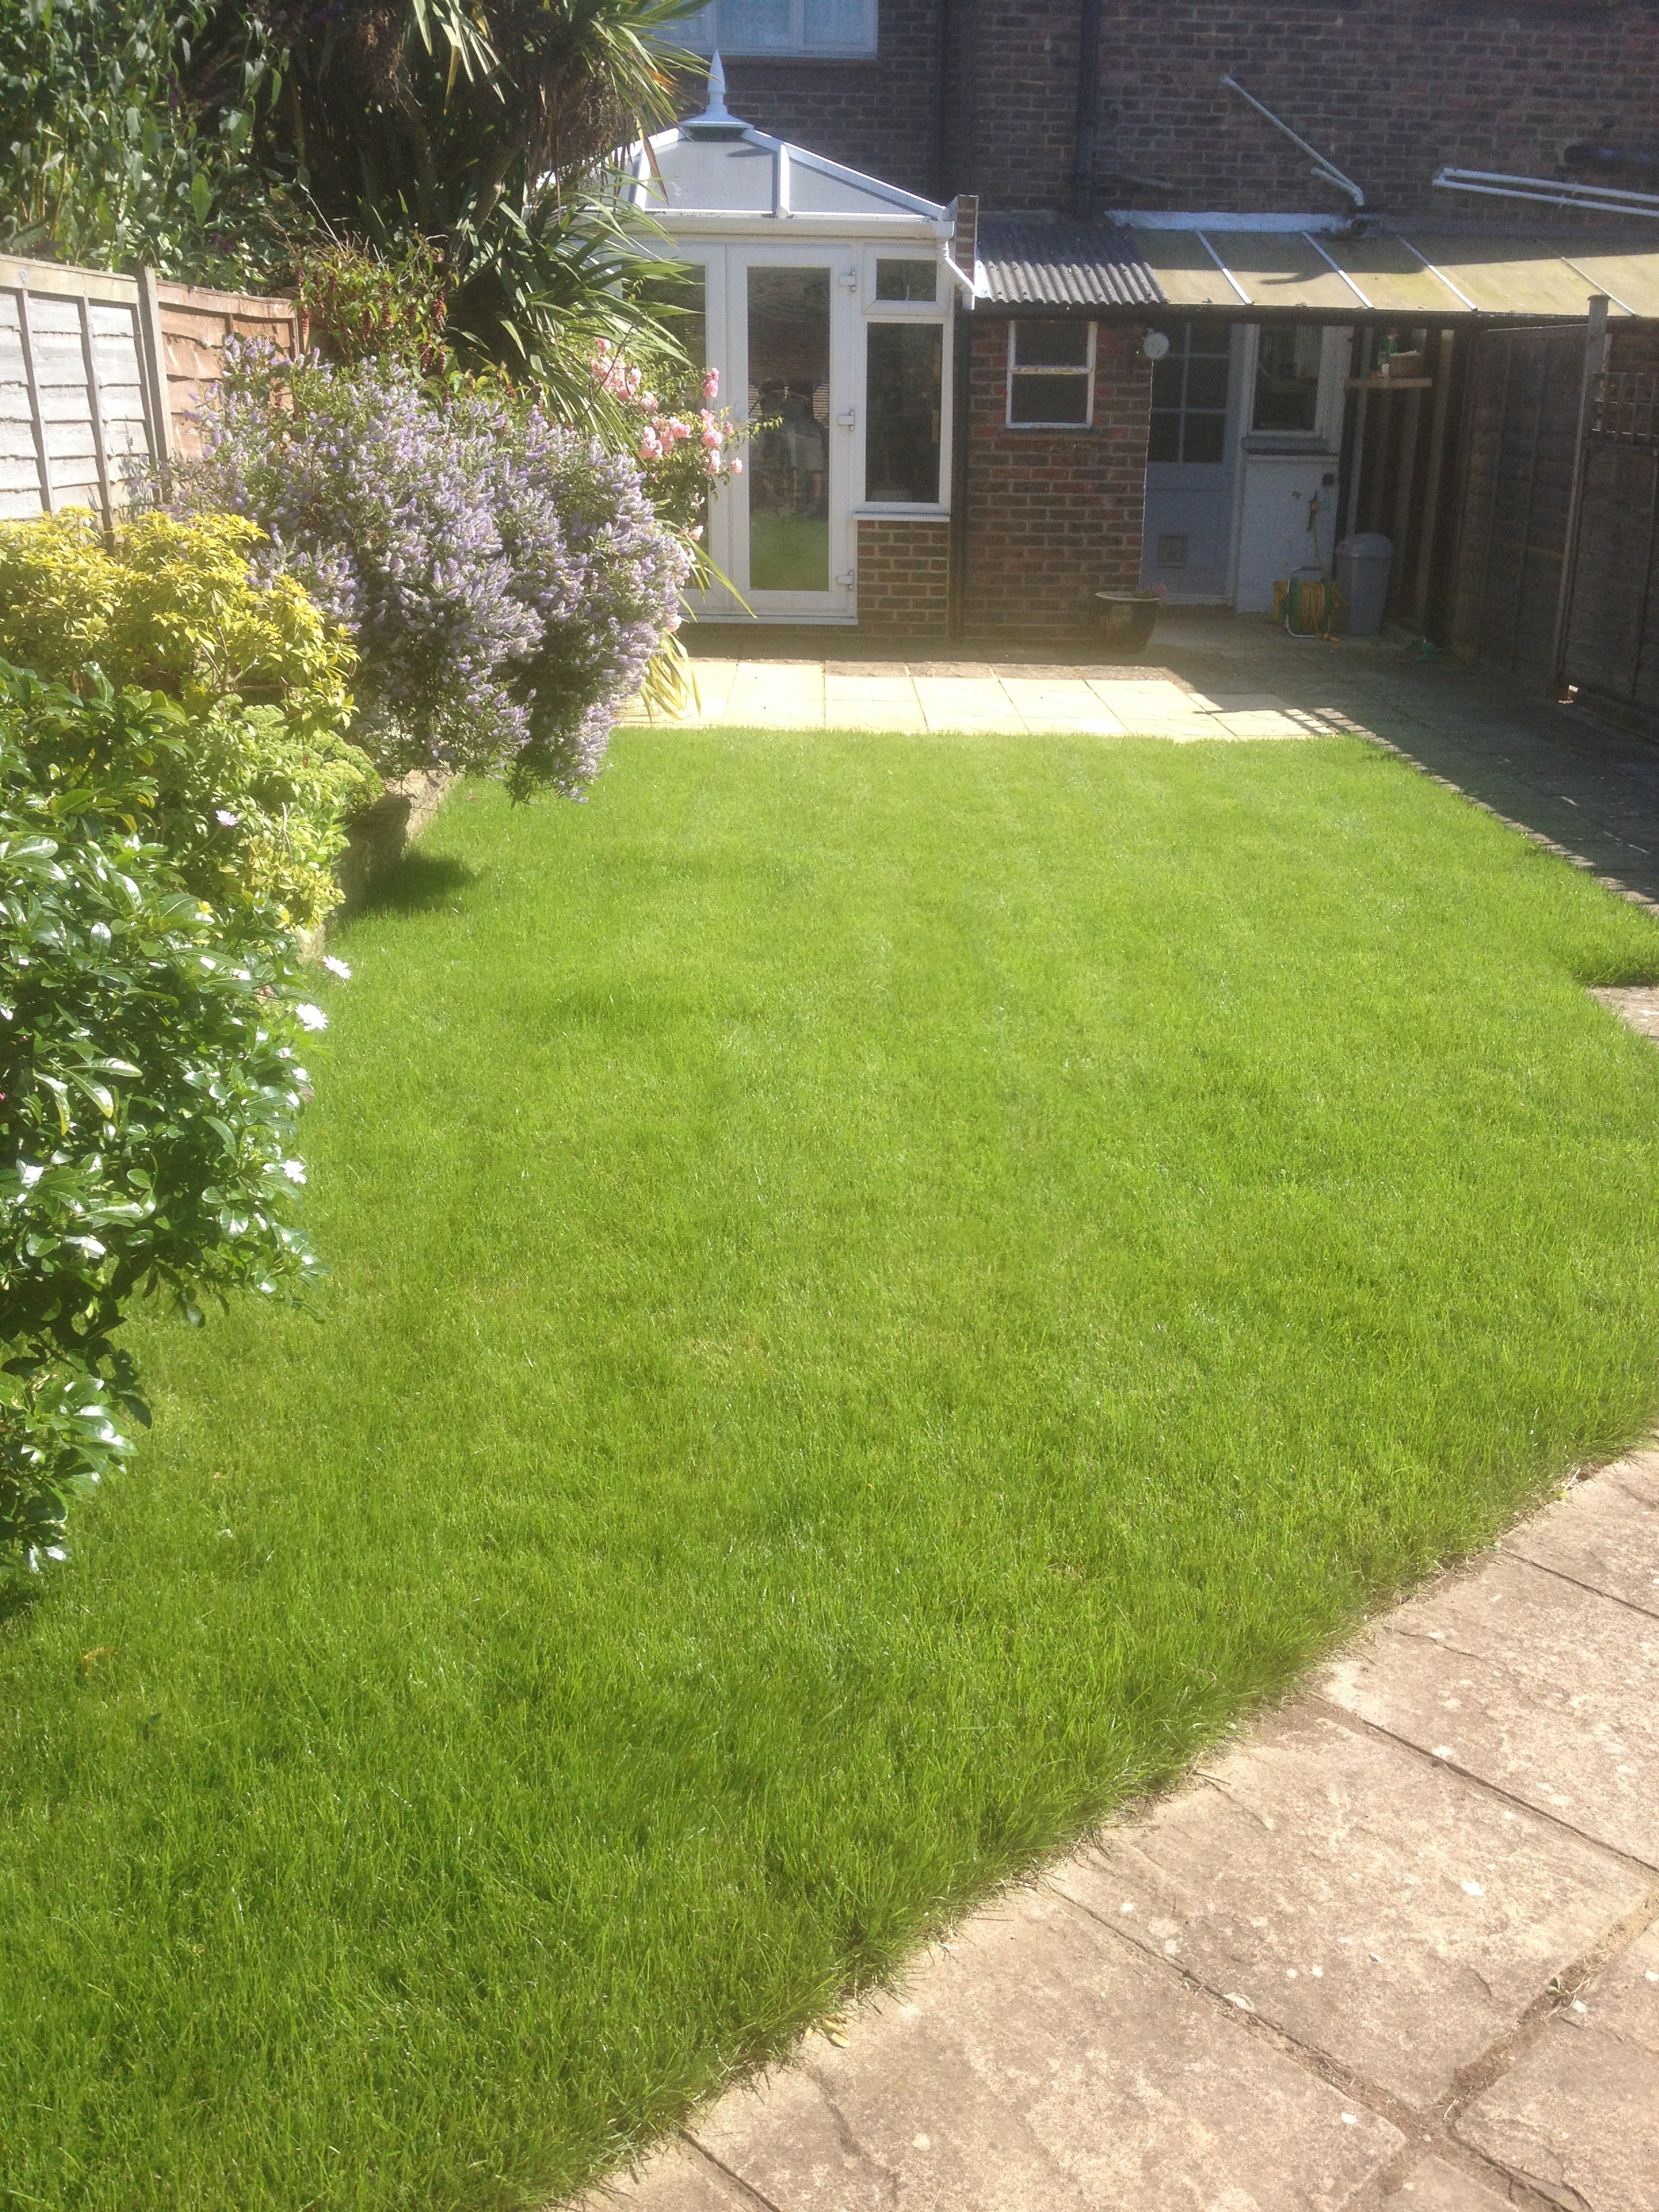 Newly laid garden